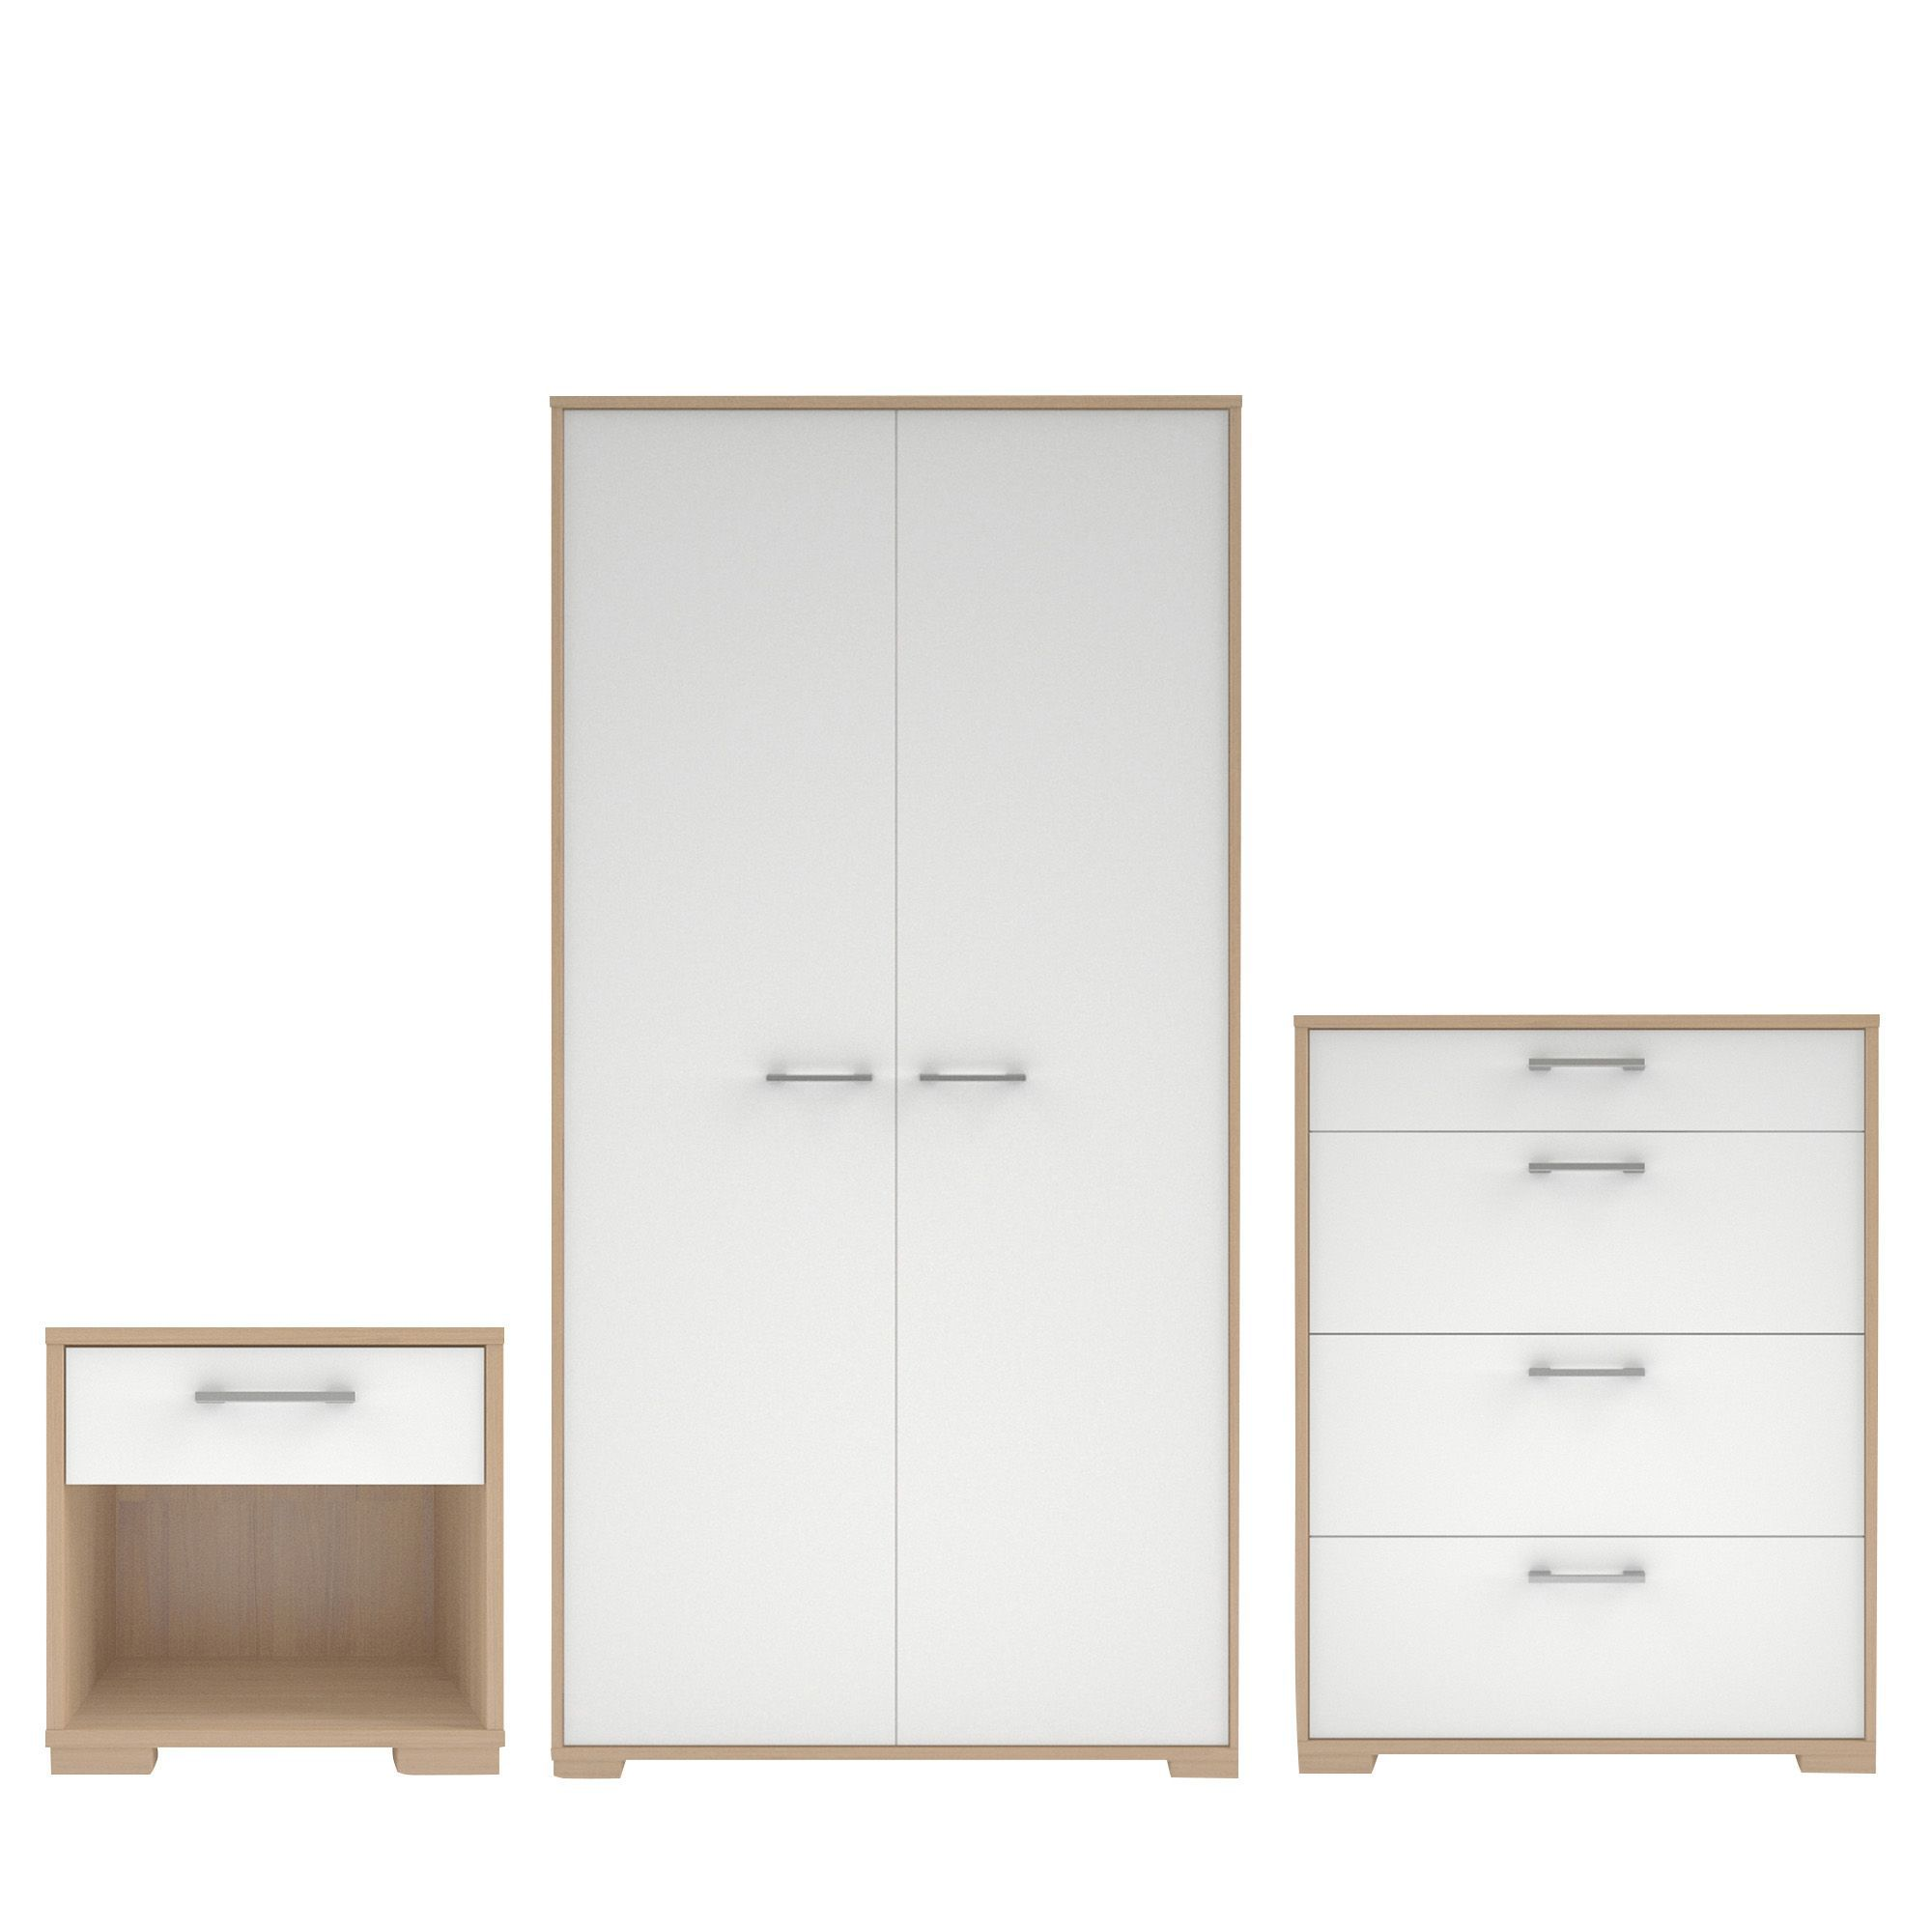 Orlando Bedroom Furniture Evie Gloss White 3 Piece Bedroom Furniture Set Departments Diy